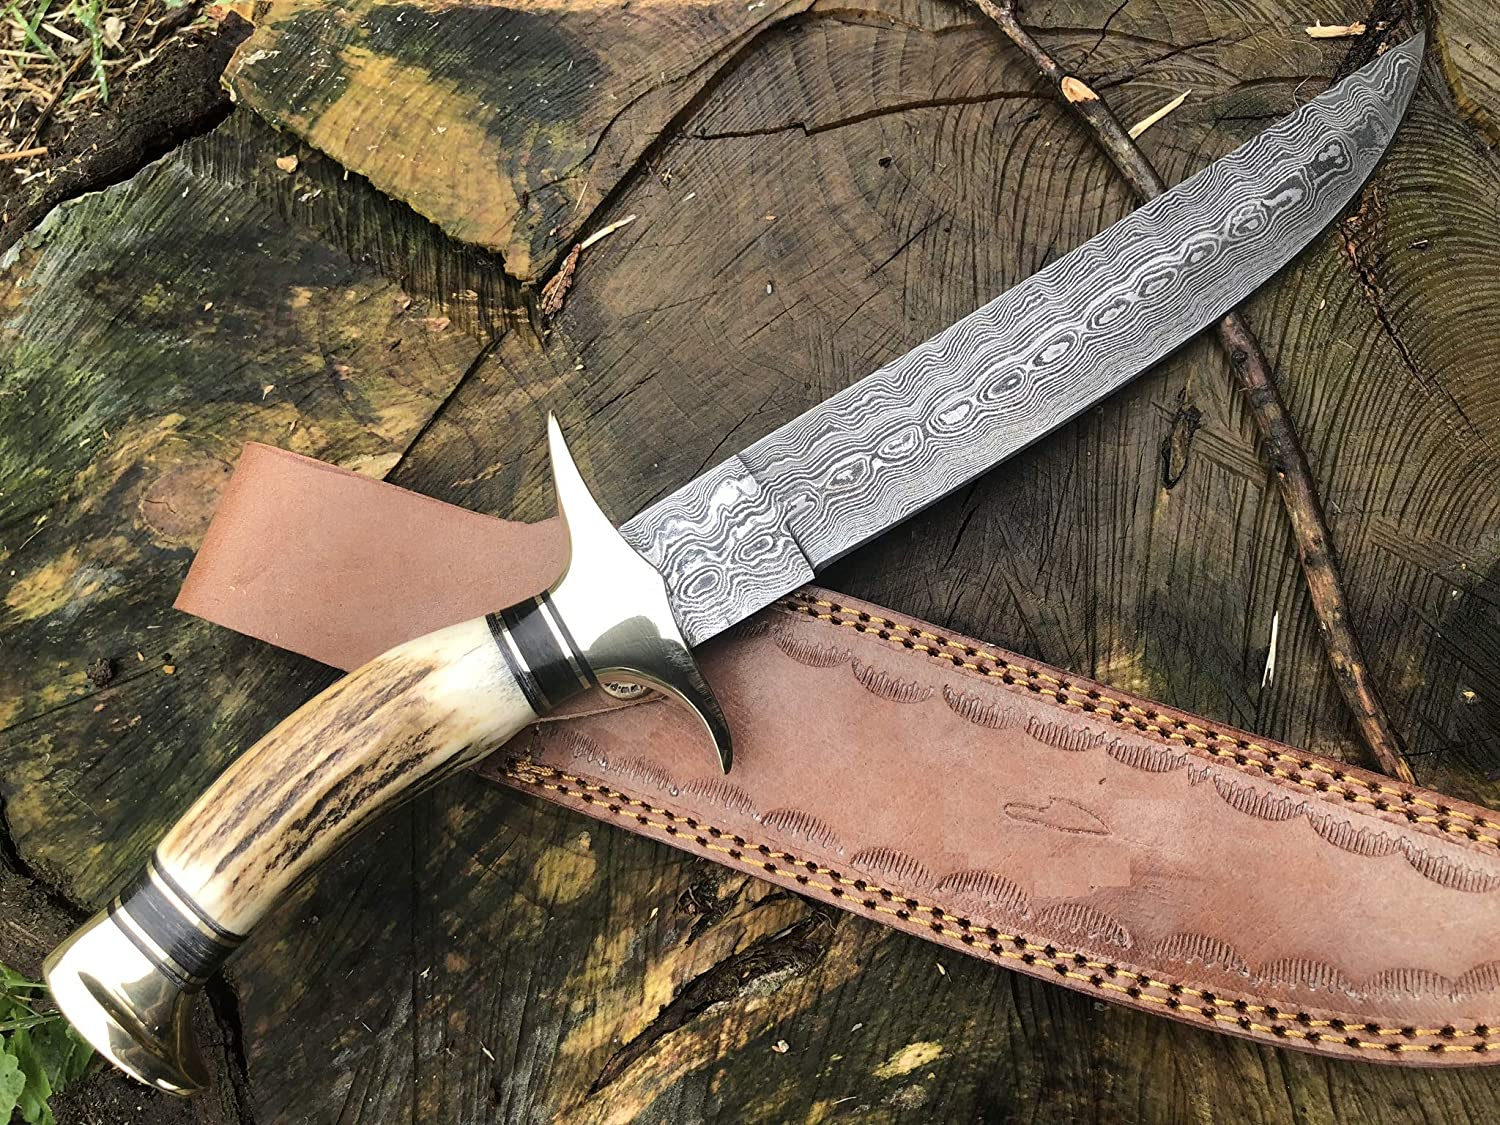 Handmade Damascus Steel Hunting Knife – Beautiful Bowie Knife – Amazing Value